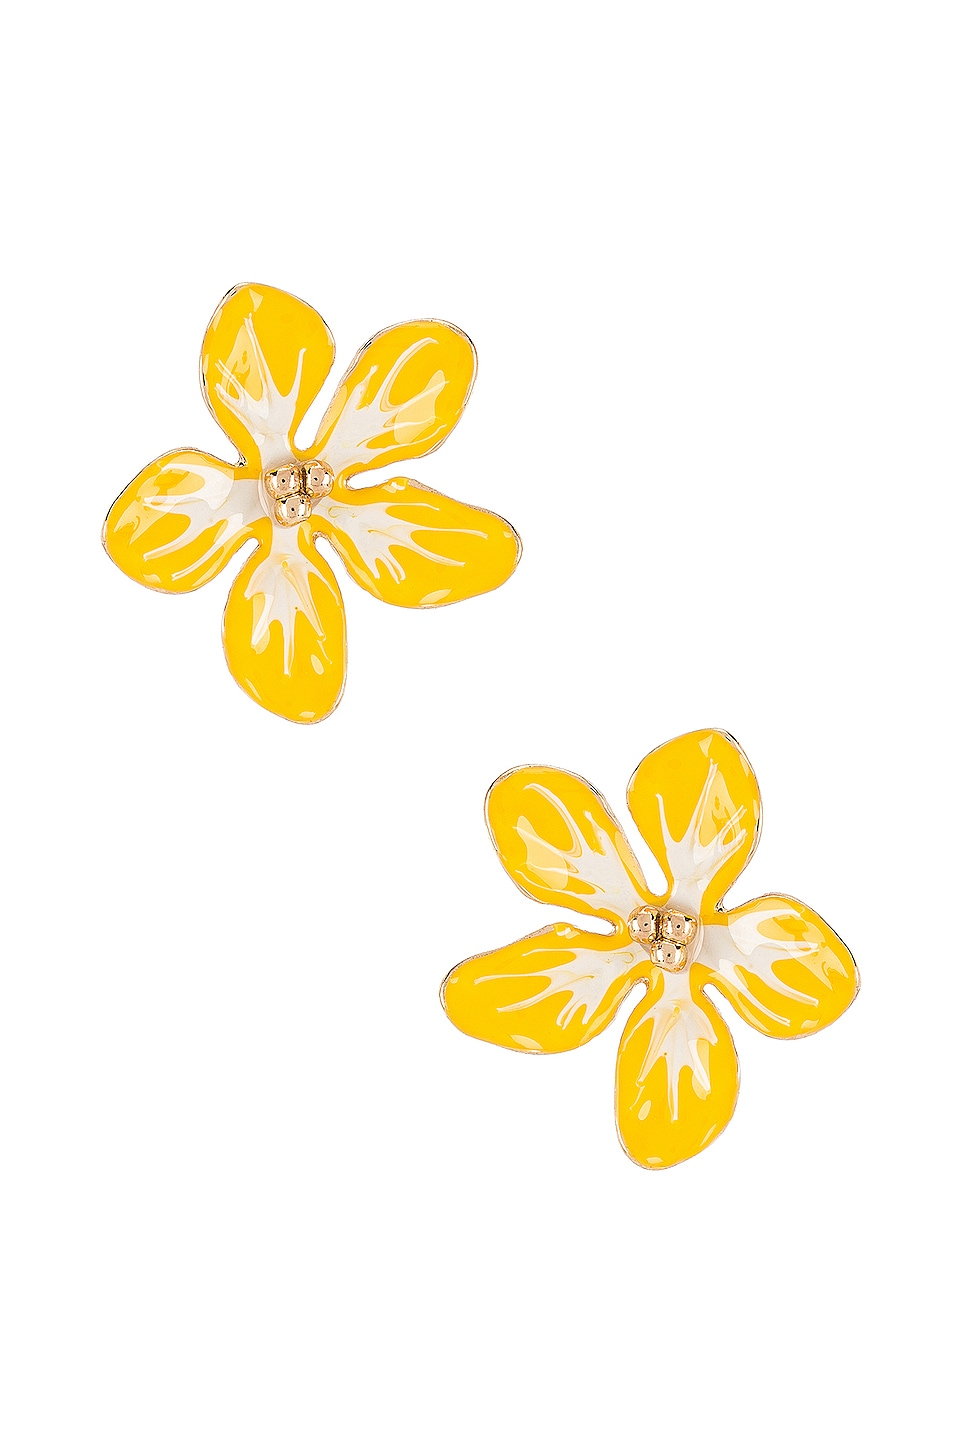 SHASHI Morning Glory Stud Earring in Yellow